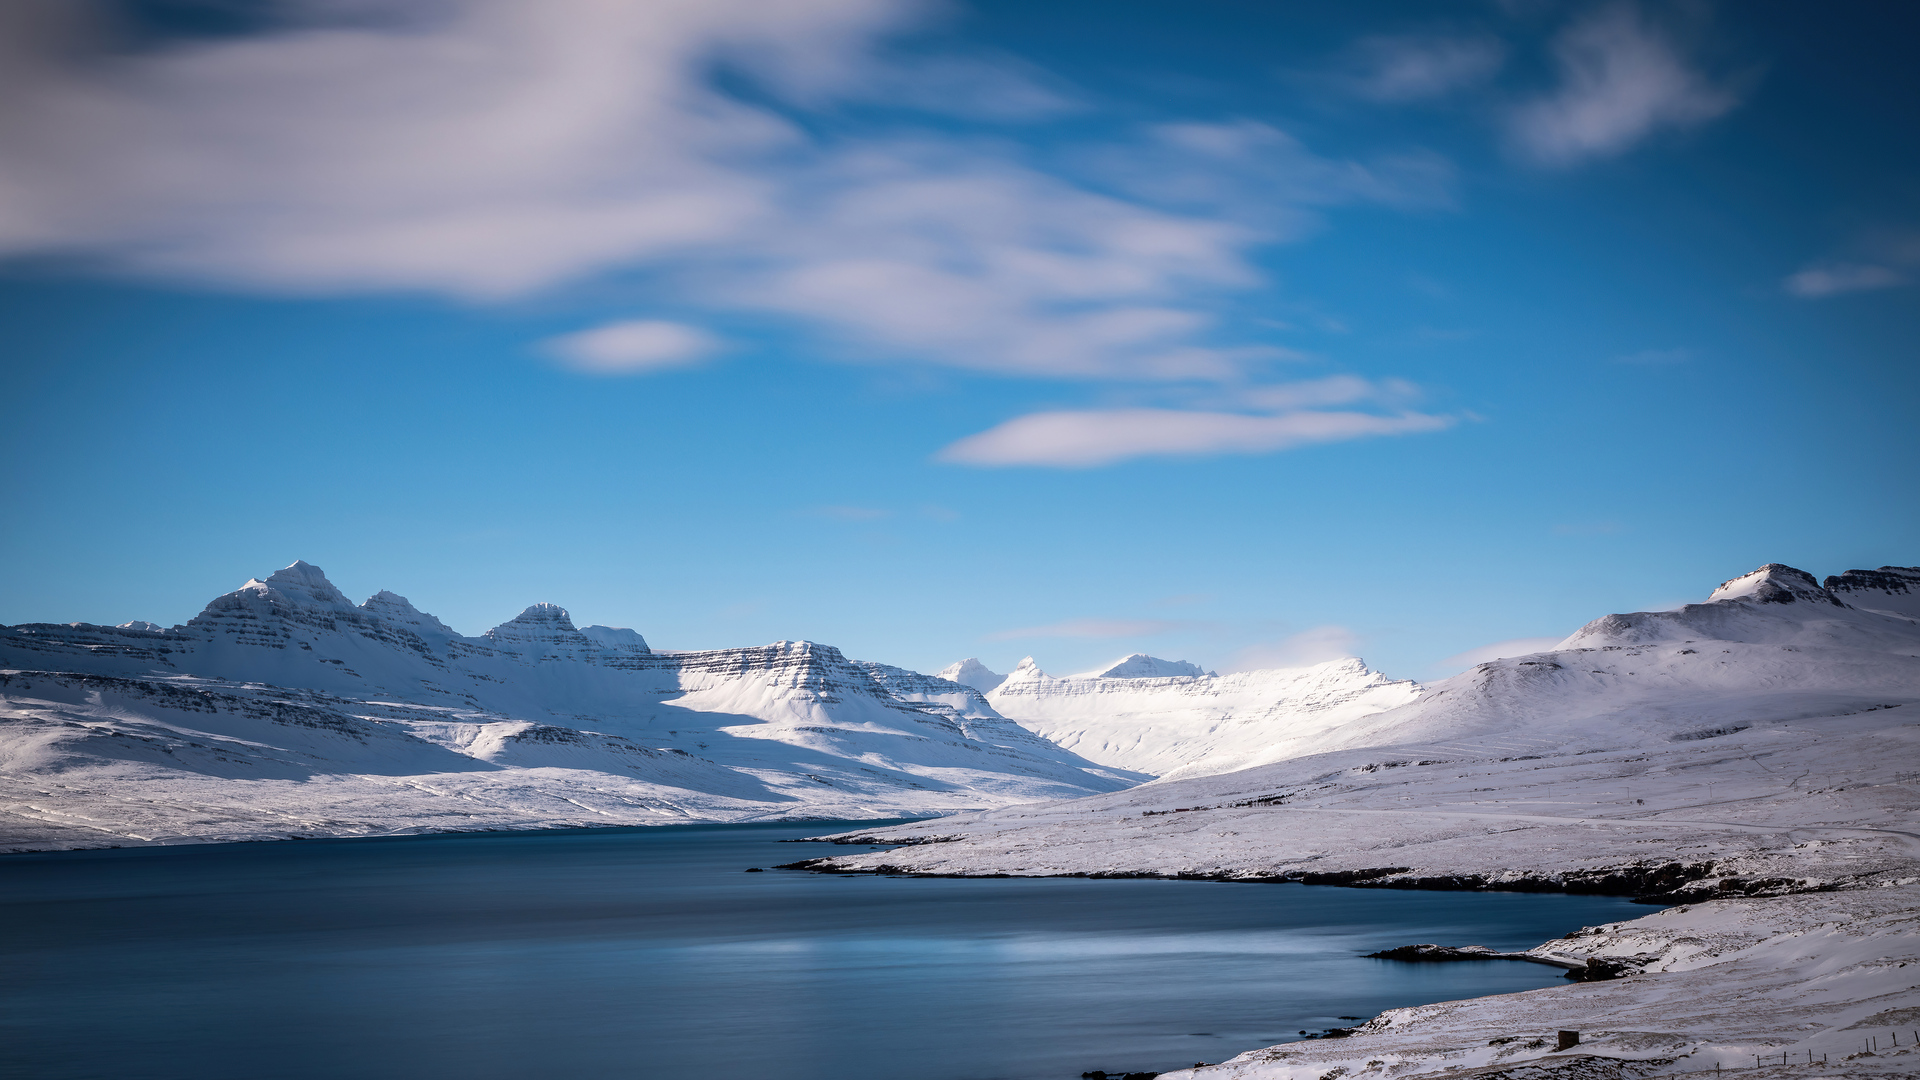 iceland-mountains-afternoon-5k-2p.jpg